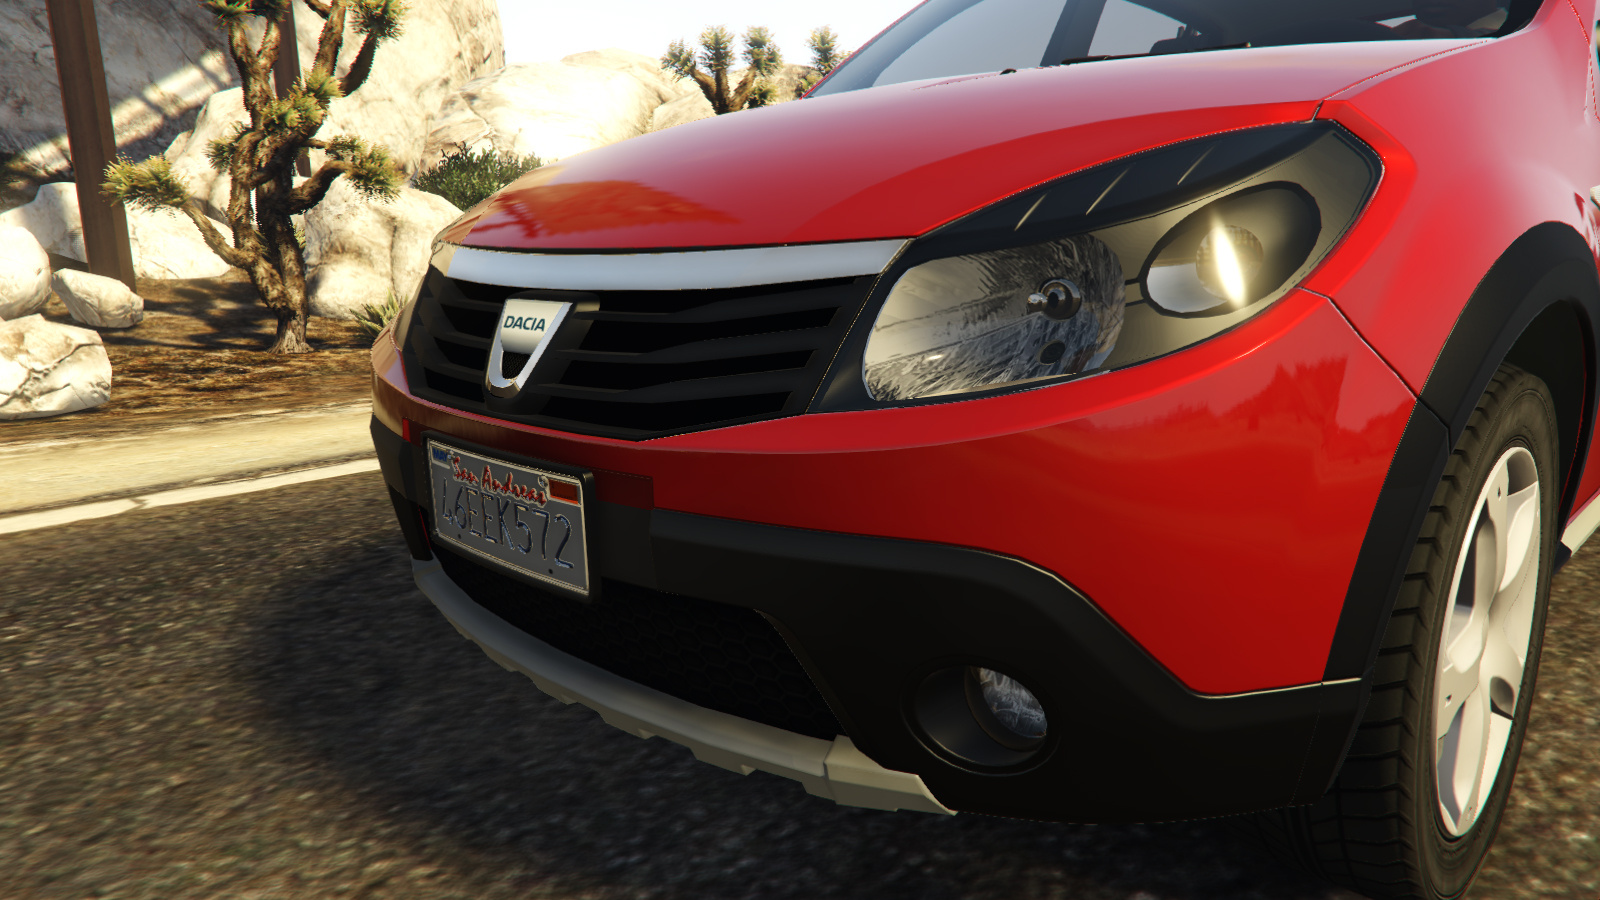 dacia sandero stepway 2008 gta5. Black Bedroom Furniture Sets. Home Design Ideas